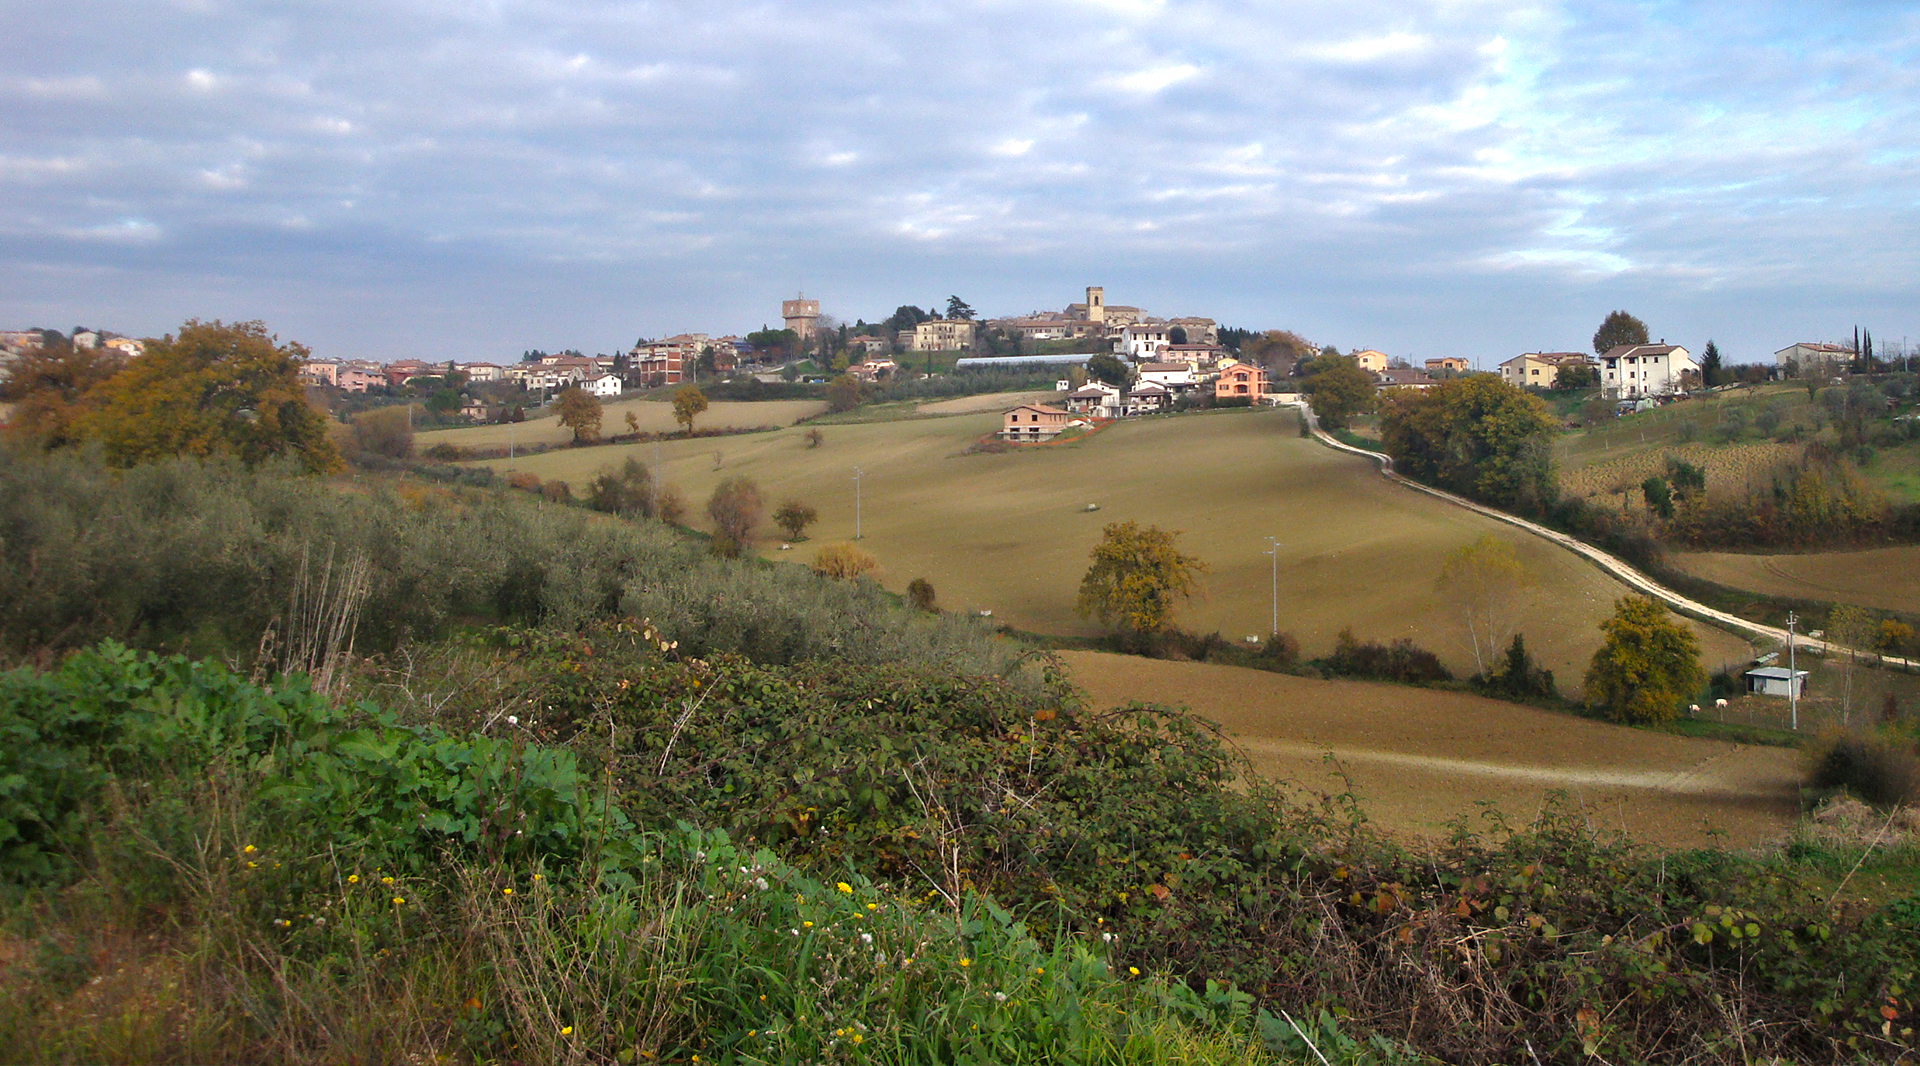 Acquasparta and the Roman ruins of Carsulae